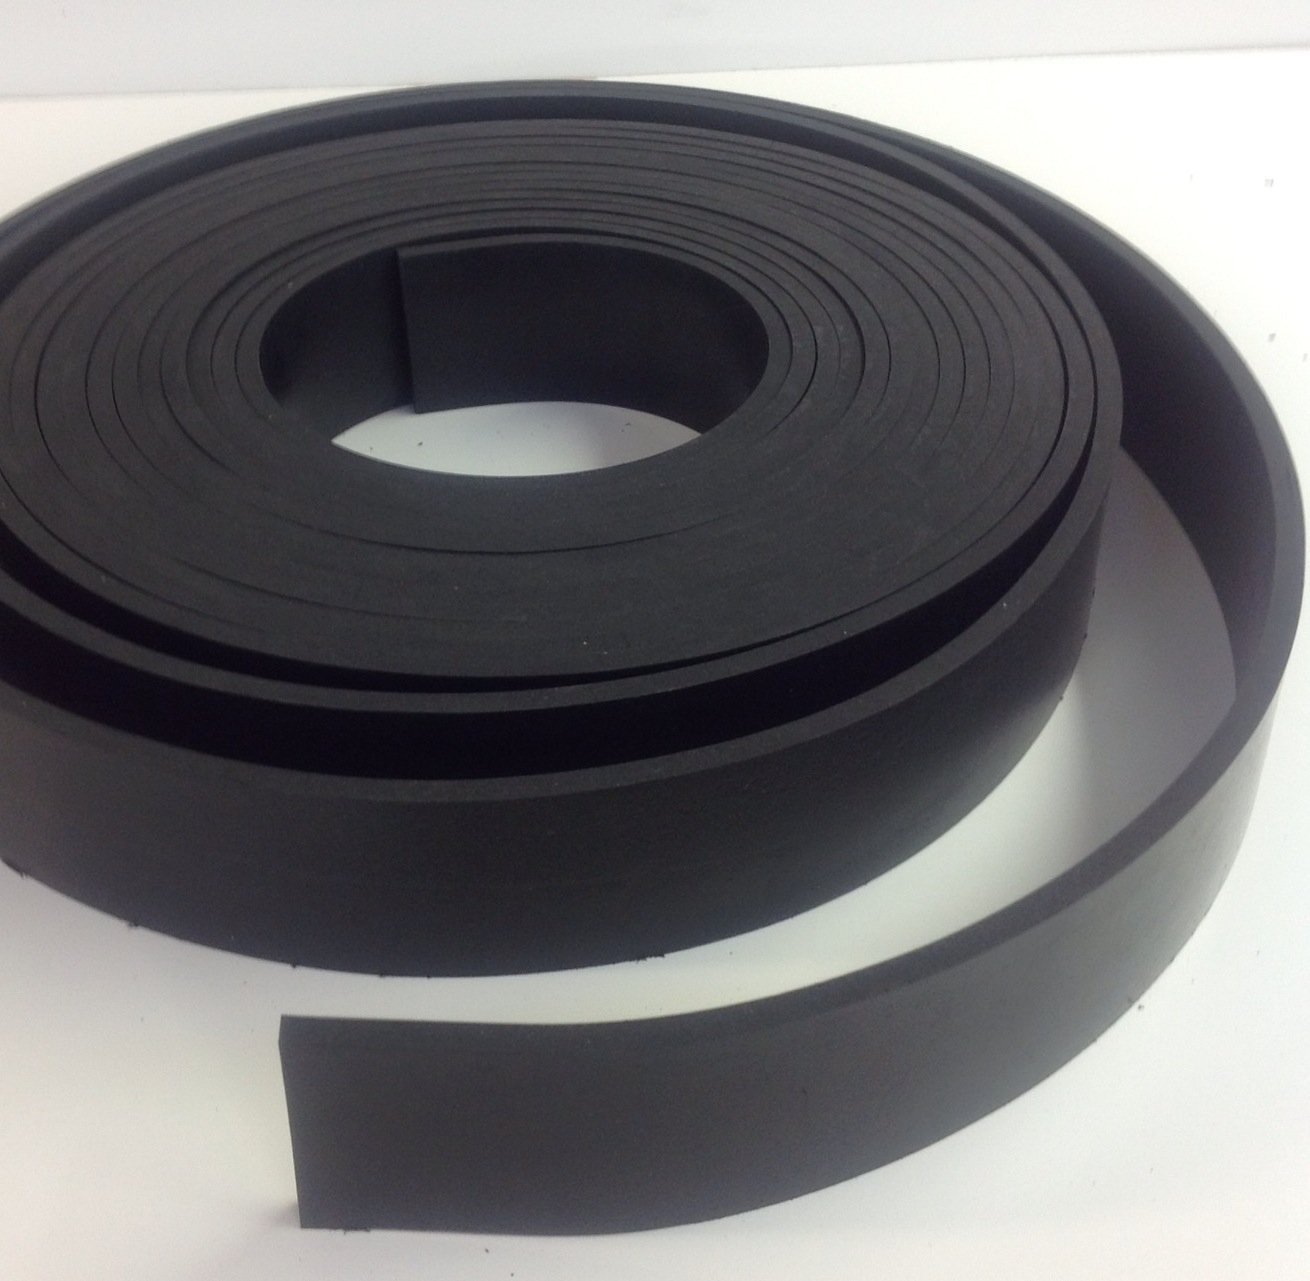 Neoprene Rubber Commercial Grade 65 A+/-5 .125'' Thick x 3'' Wide x 10' Feet Long